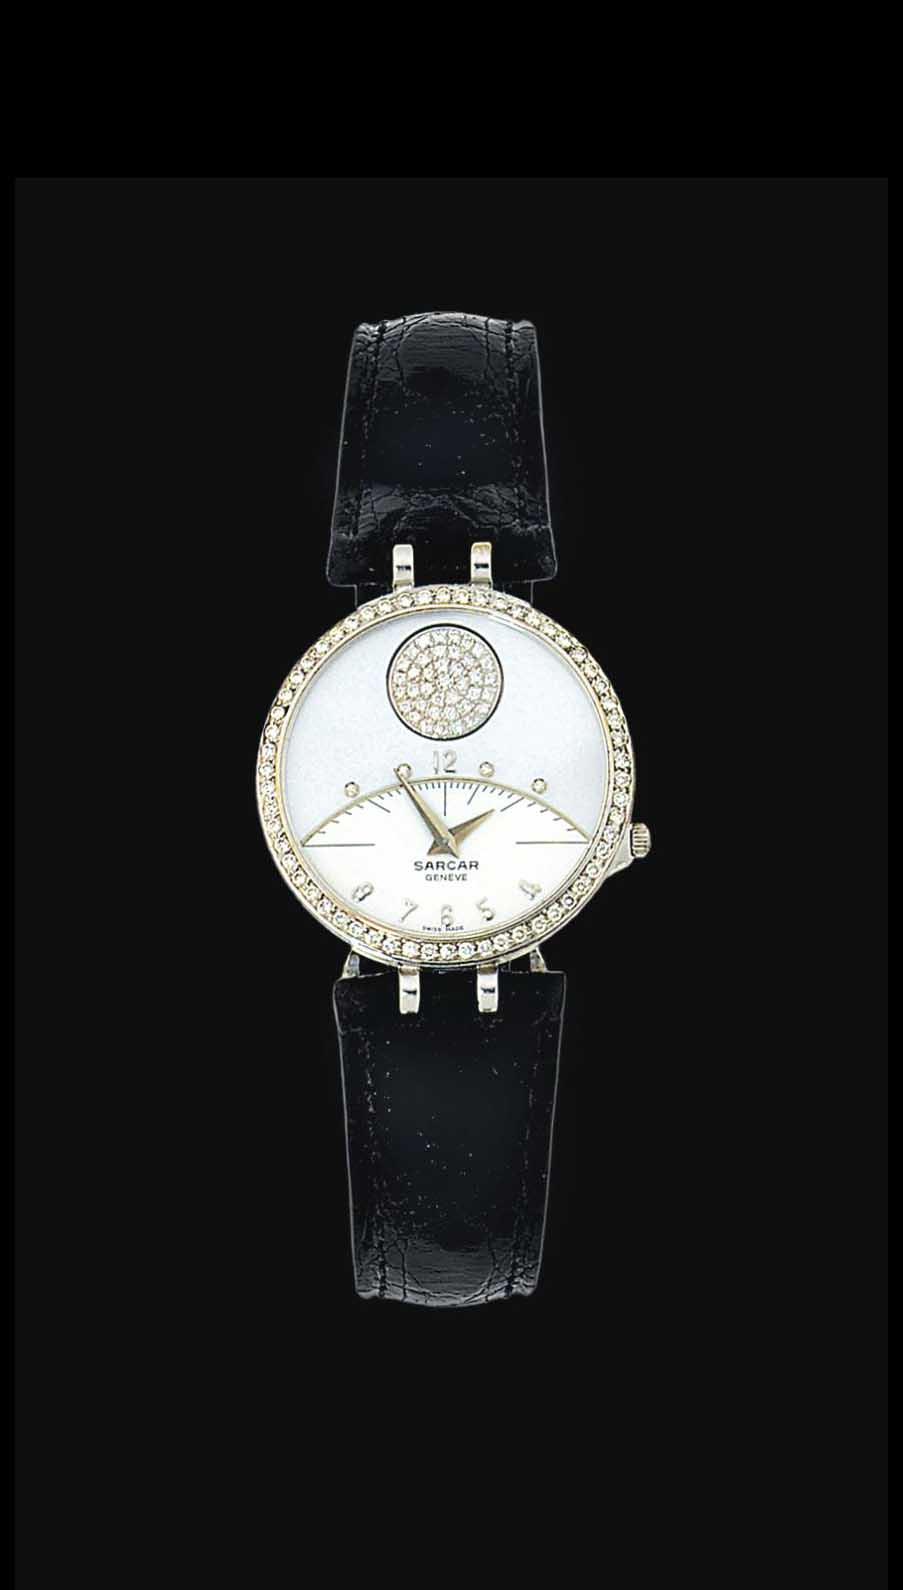 An 18ct white gold, mother-of-pearl and diamond-set quartz wristwatch, by Sarcar